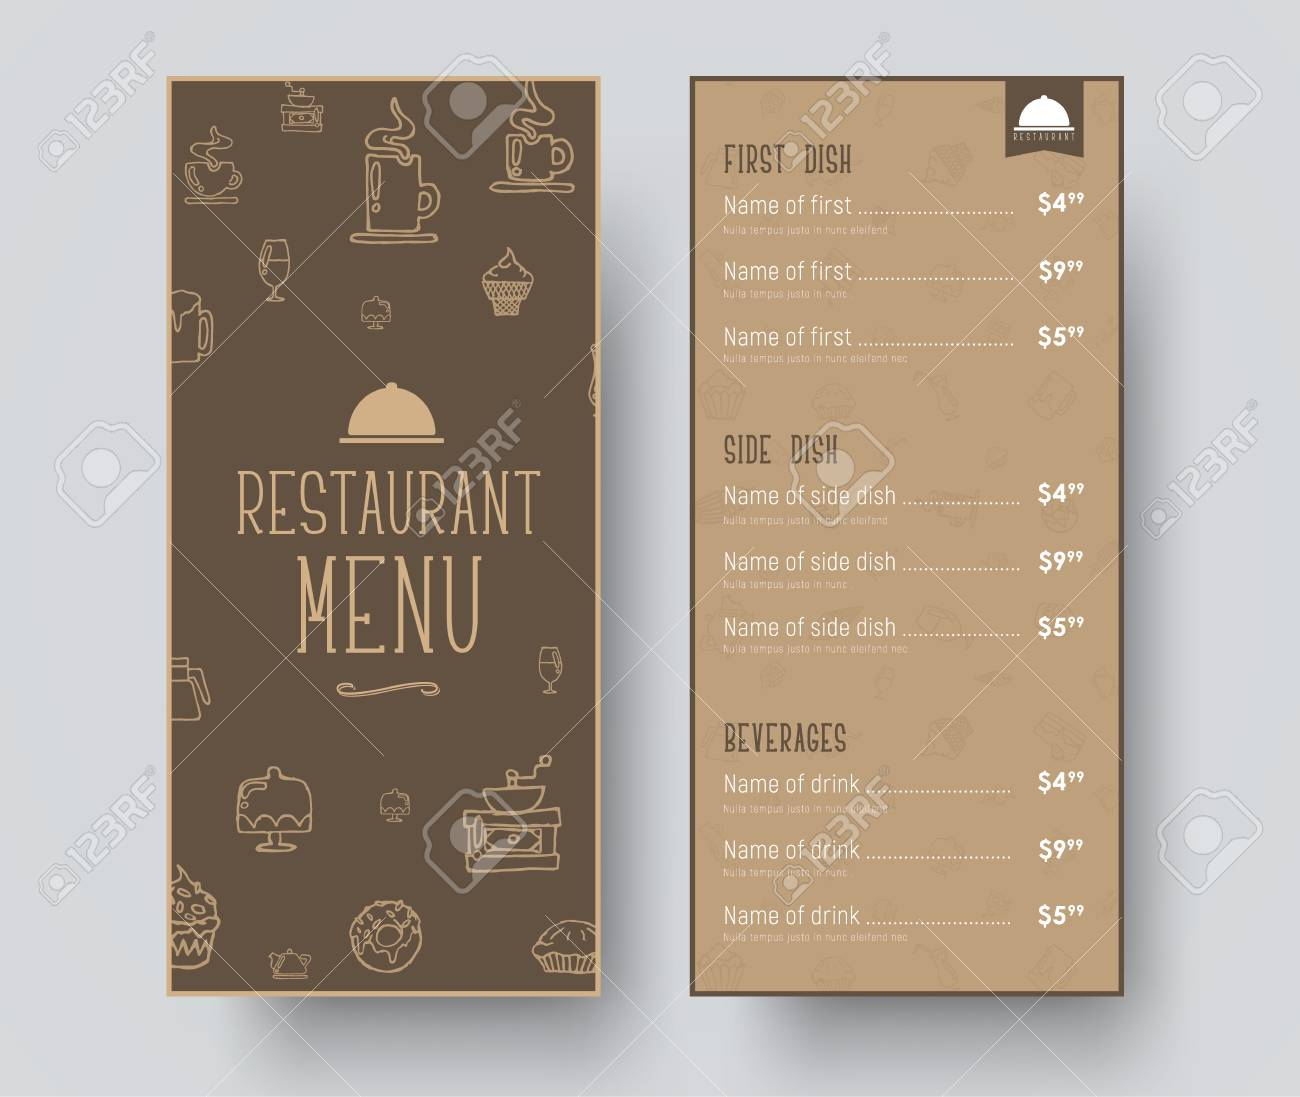 Design Of A Narrow Menu For A Restaurant Or A Cafe Template Royalty Free Cliparts Vectors And Stock Illustration Image 80951302